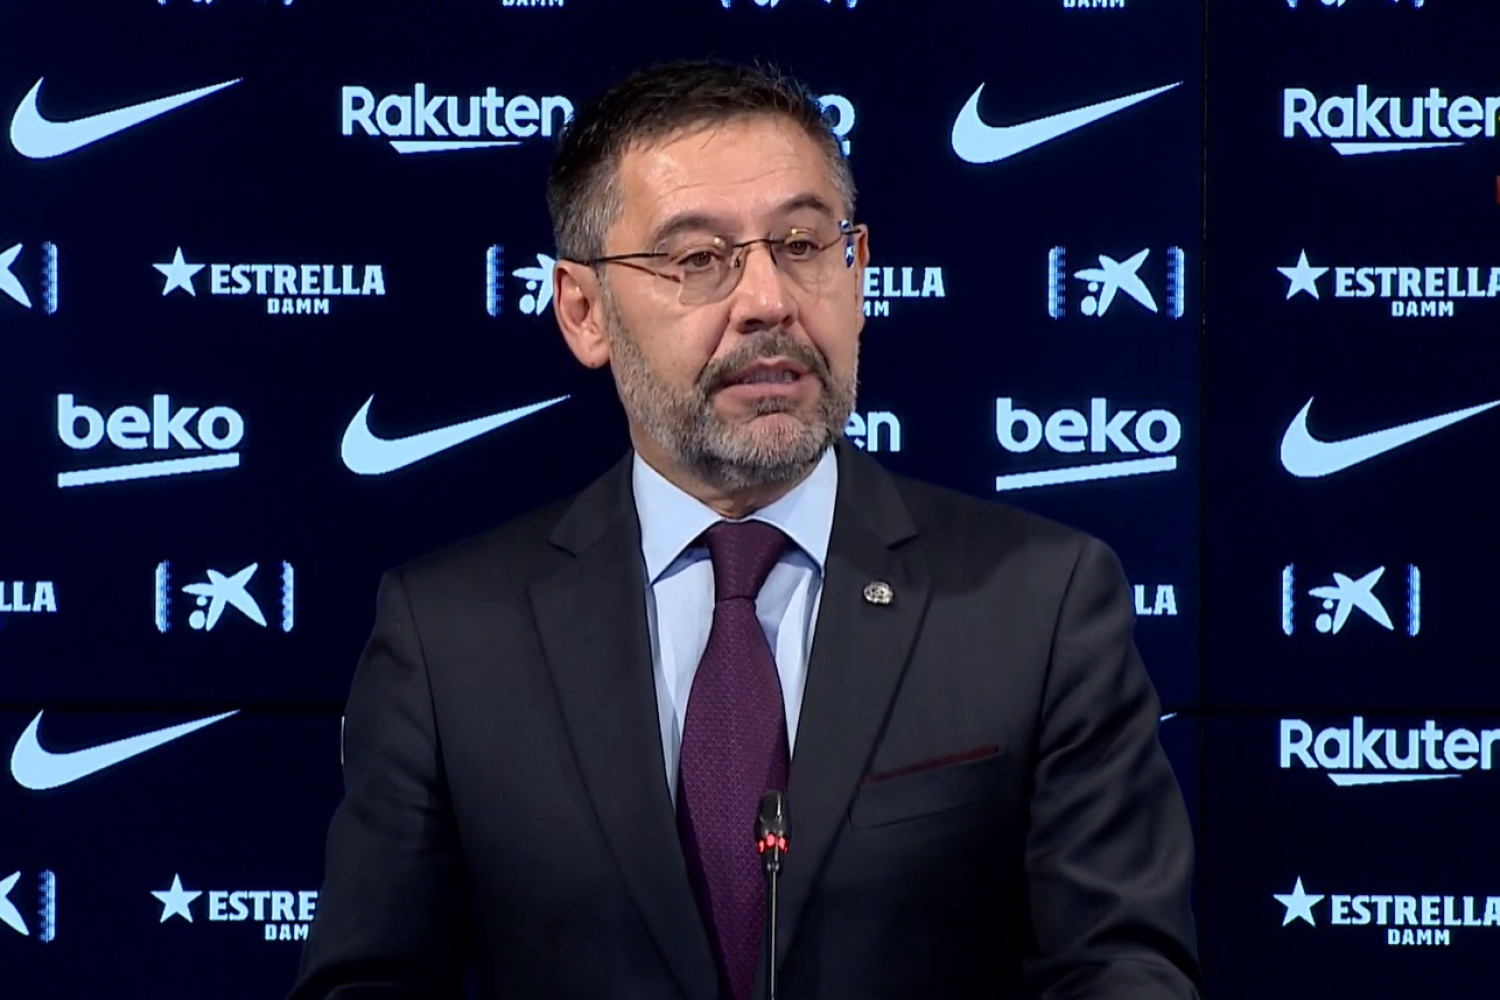 FC Barcelona president Josep Maria Bartomeu announces his resignation (Screenshot from press conference)